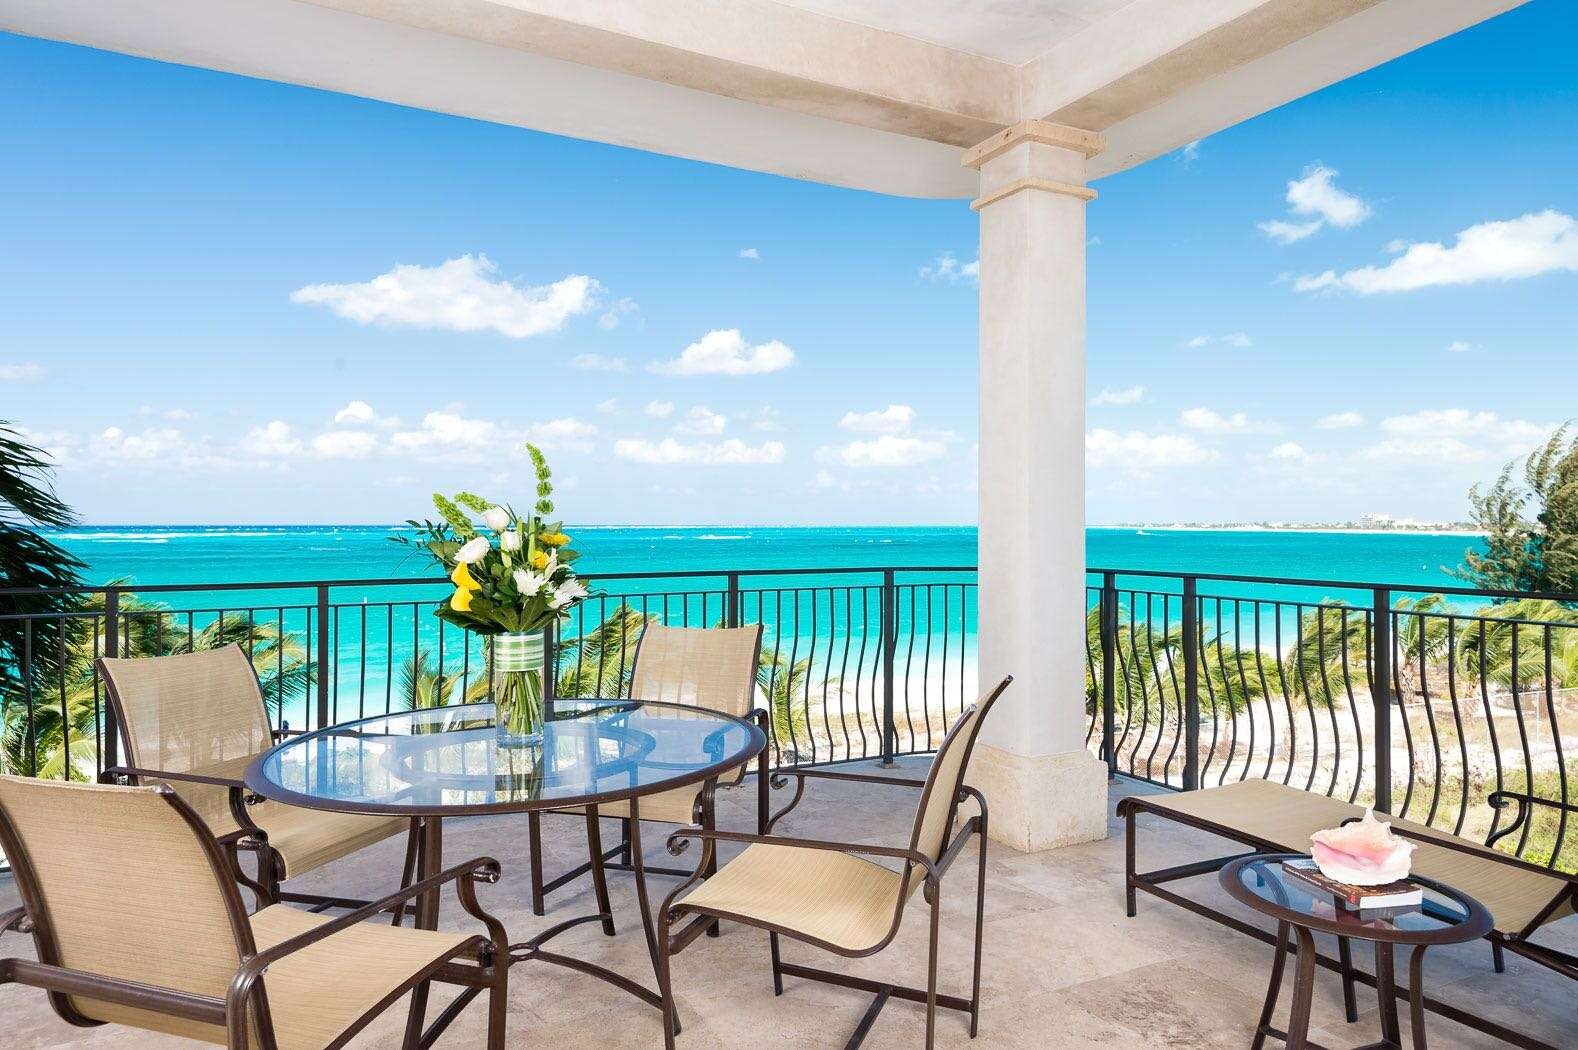 Luxury villa rentals caribbean - Turks and caicos - Providenciales - Bianca sands on grace bay - 1 BDM Oceanfront Suite - Image 1/5